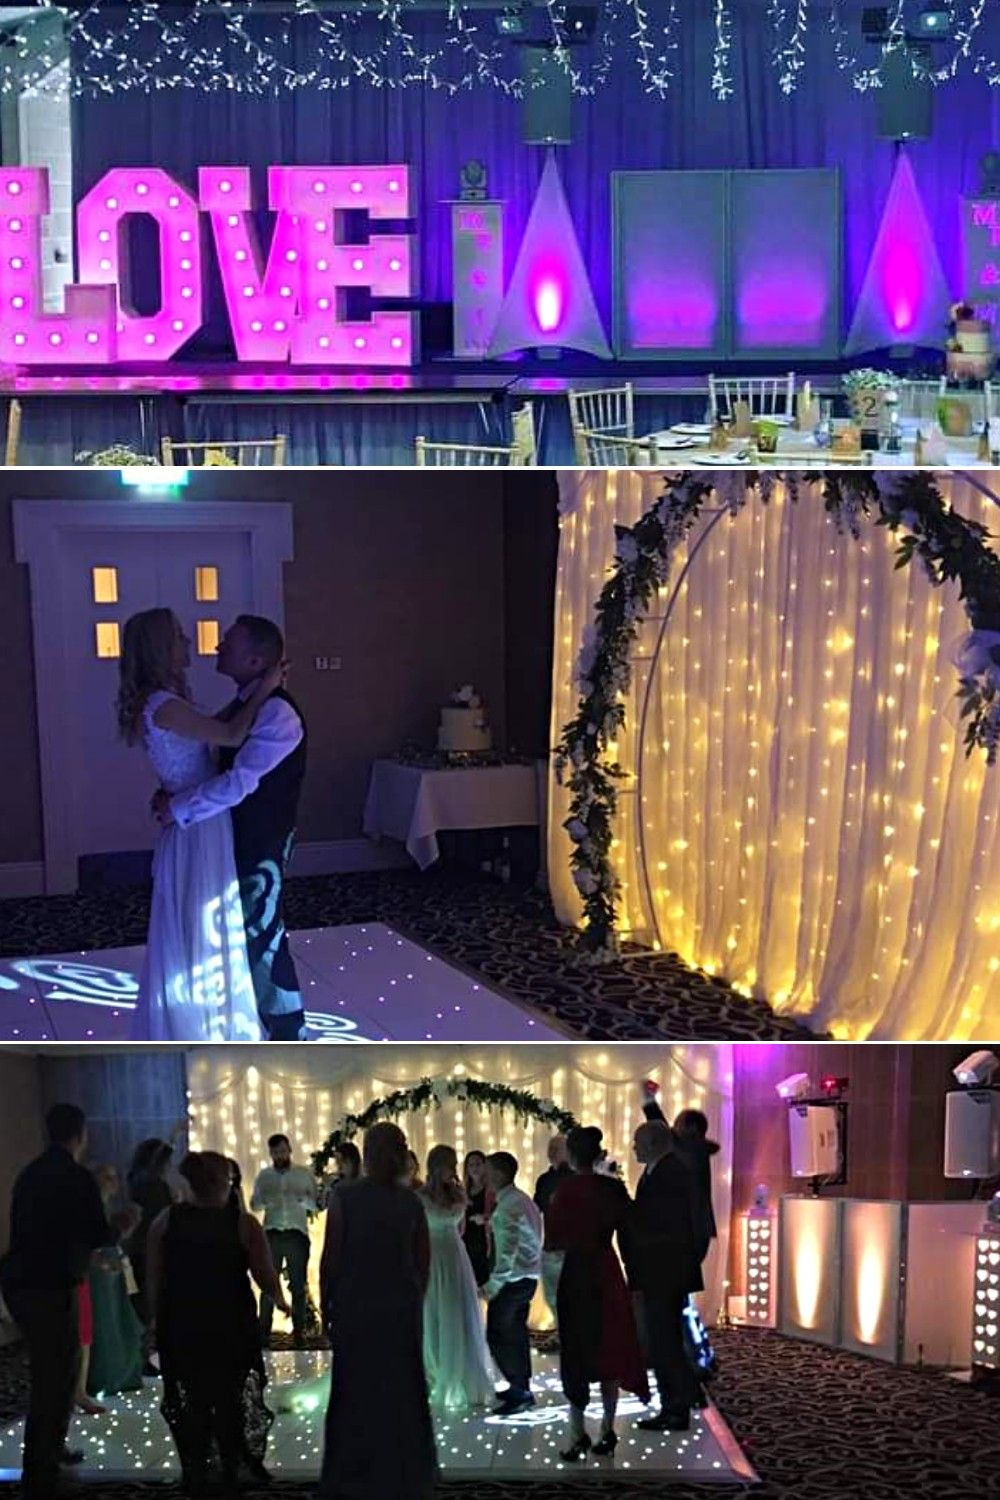 Solly's Discos will keep you and your guests happy, it's what they do best. Their aim is to set the perfect atmosphere, creating a fun, lively and unforgettable wedding that will leave you and your guests with the most amazing memories ever! #wedding #weddingdj #ukweddingparty #weddingdisco #weddingentertainment #loveletters #lightupletters #weddingreceptionideas #weddingimages #weddingideas #weddingdirectory #fairytaleweddingplanningintheuk #bridesideas #weddingphotos